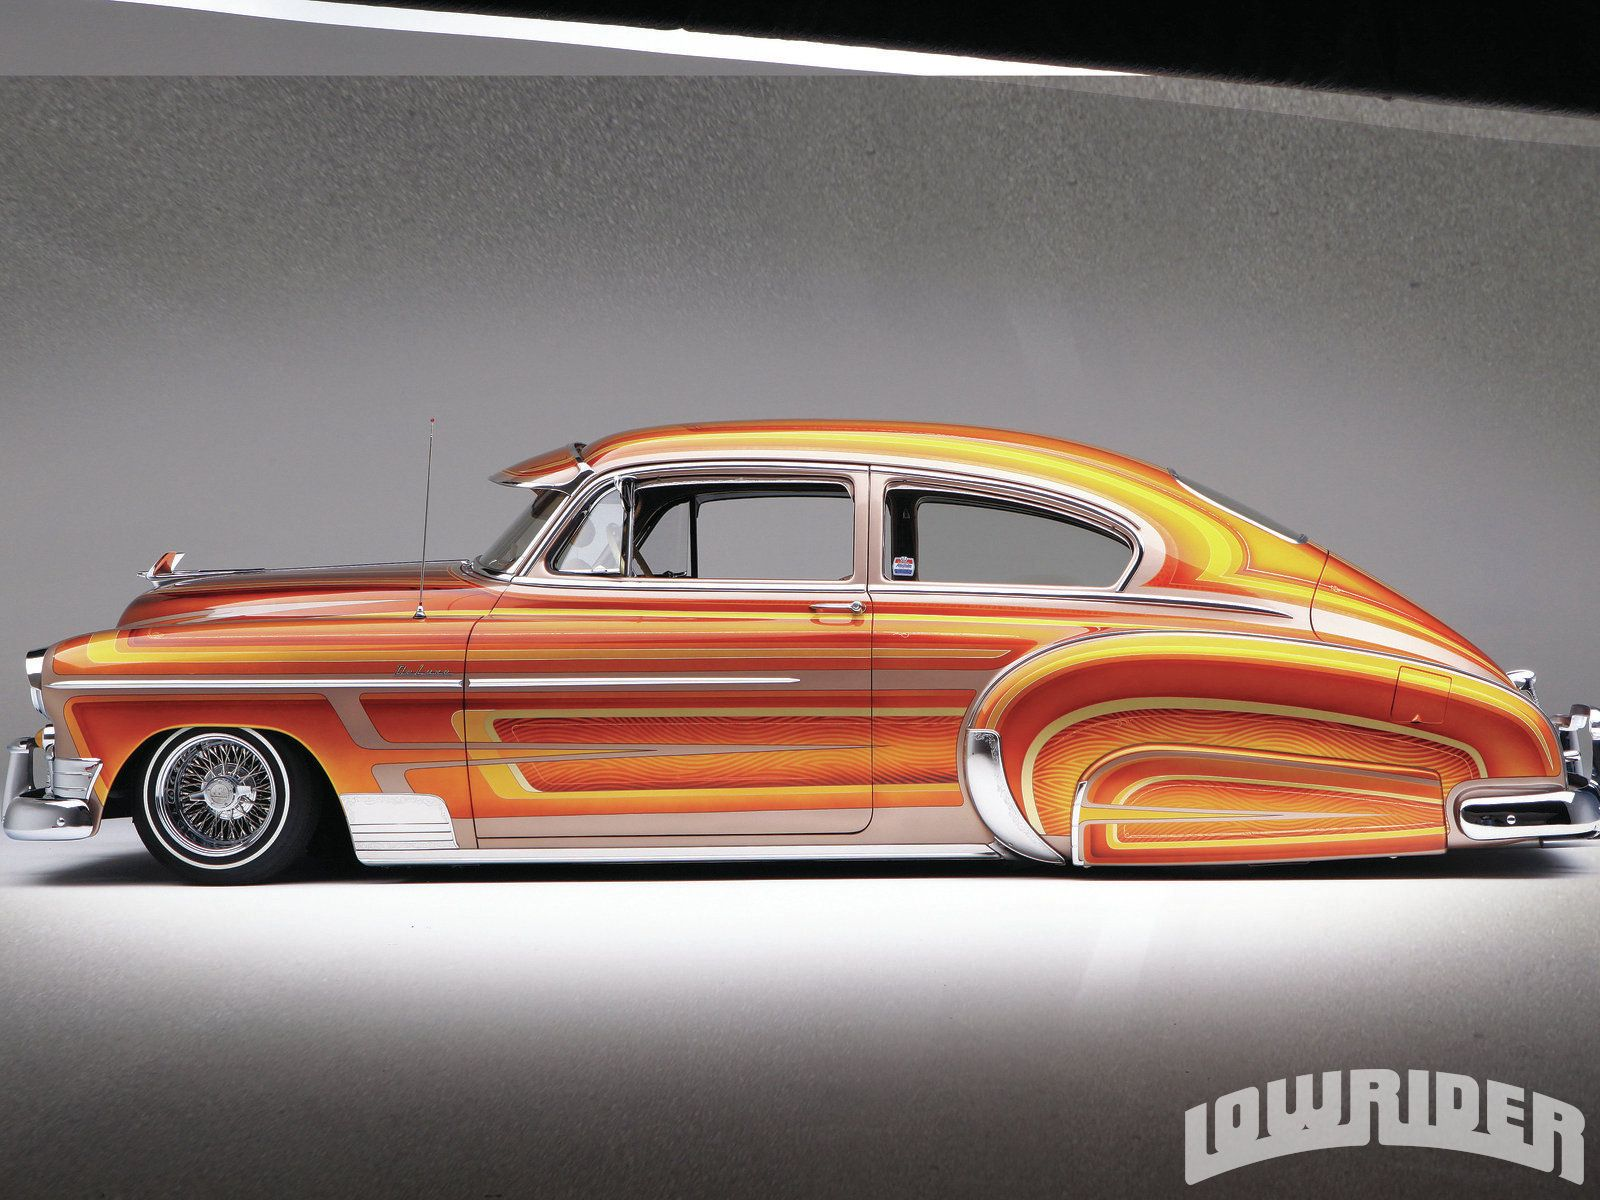 View This 1950 Chevrolet Fleetline Engine Photo 1 After A Life In American Motors Wiring Diagram Lowrider Magazine Beach Wagon Custom Cars Cadillac Motorcycles